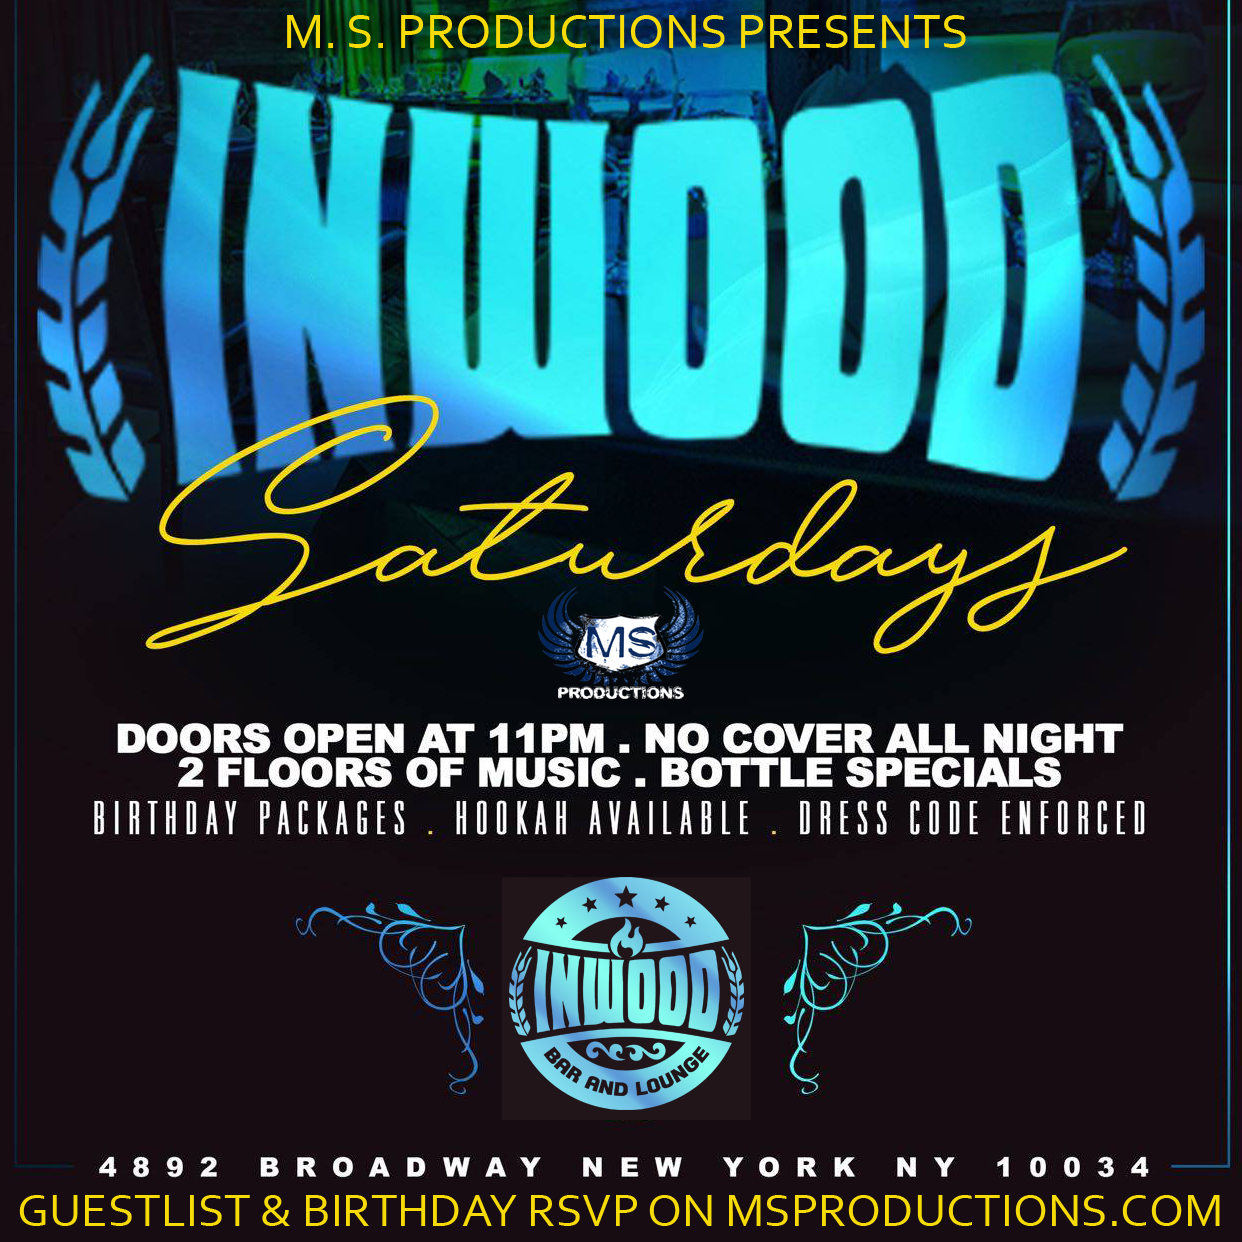 Inwood Bar and Lounge